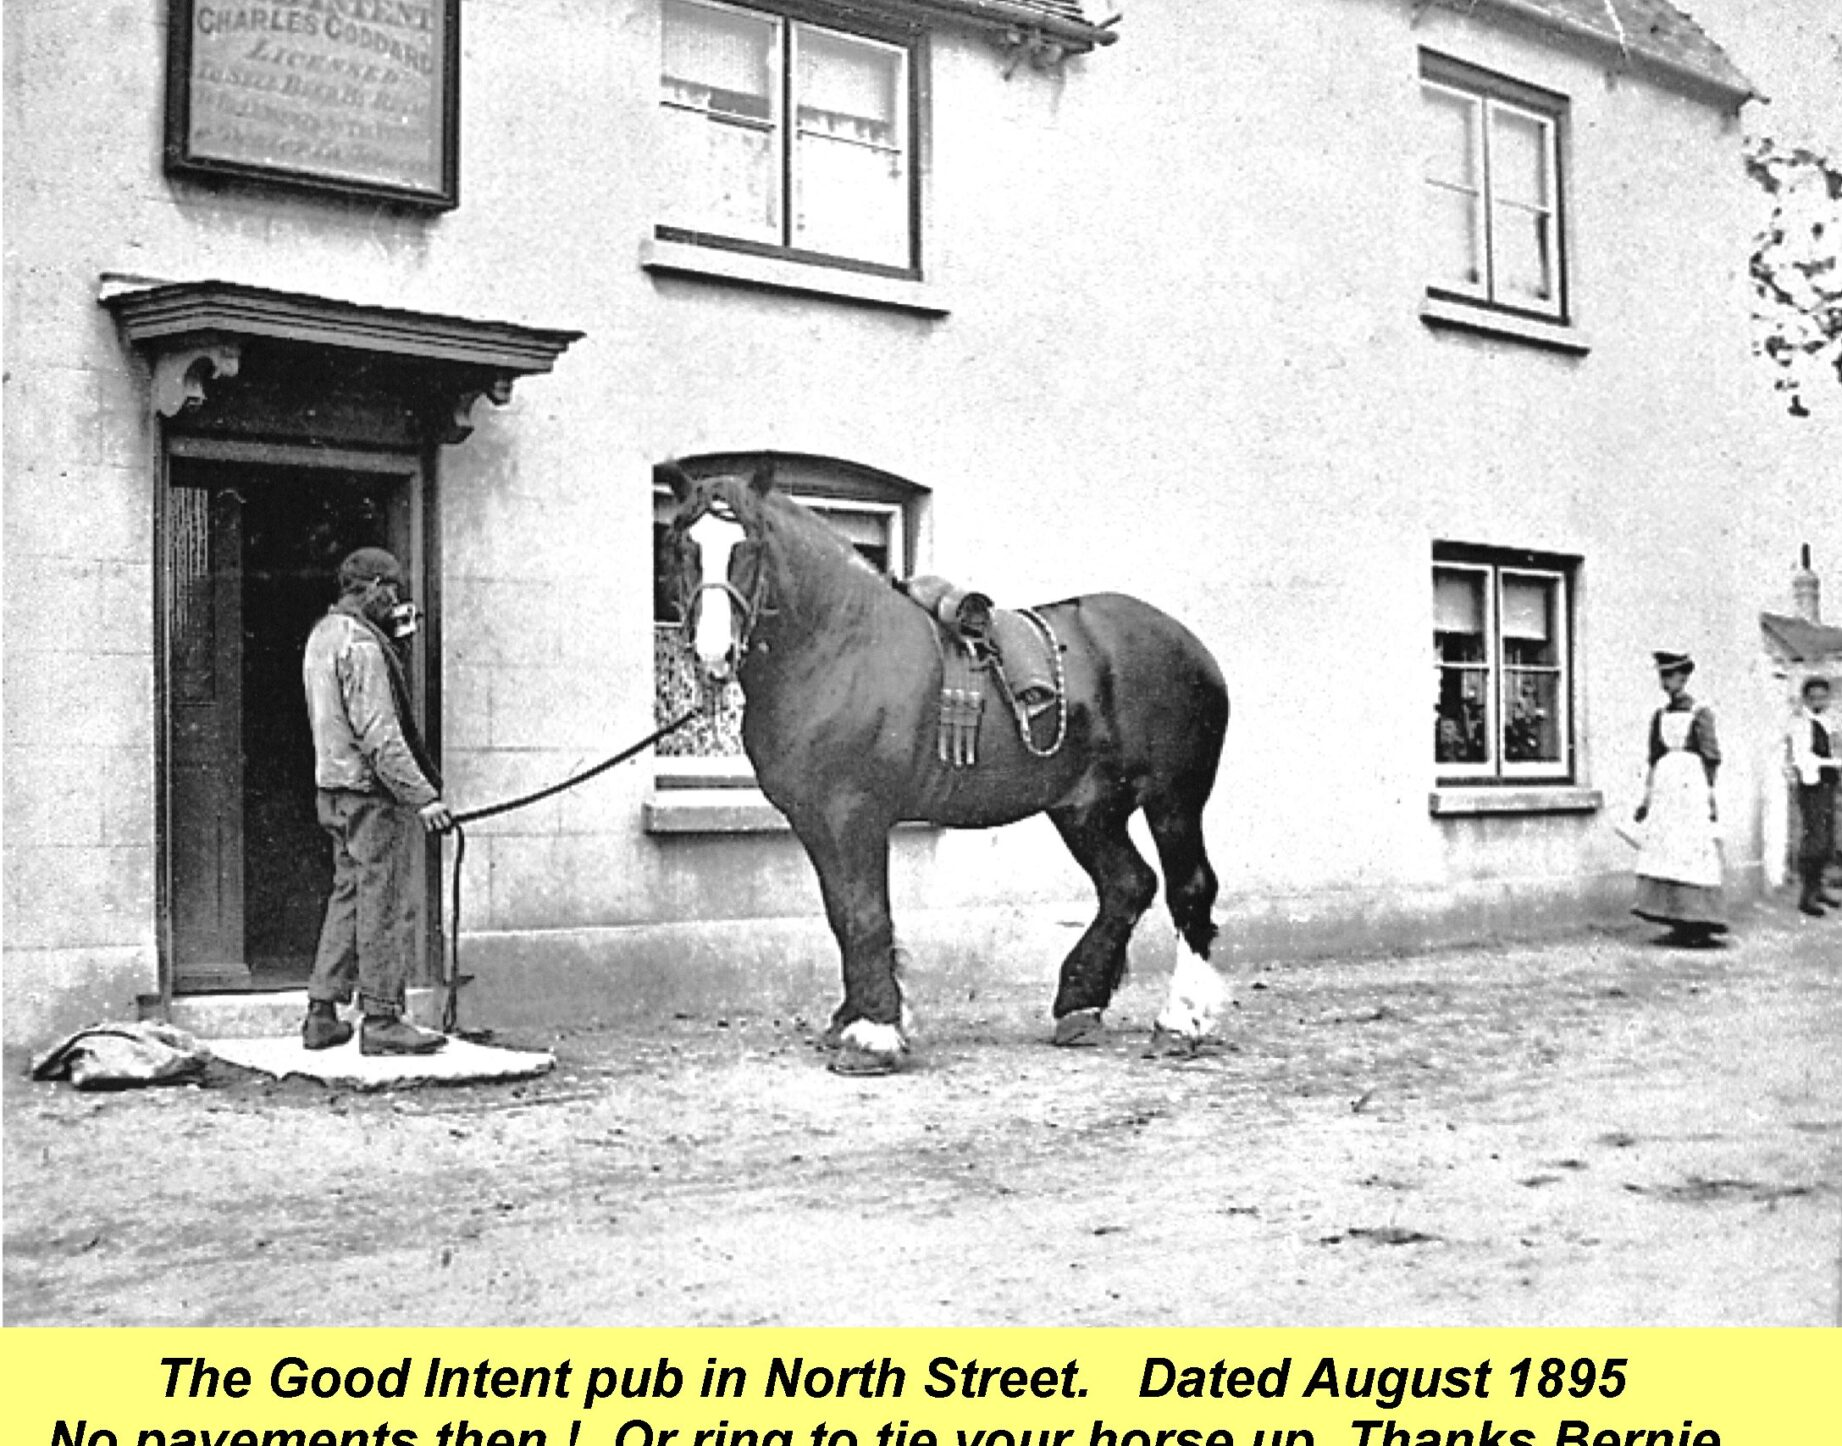 WESTBOURNE HISTORY PHOTO, Good Intent Pub, Shire horse